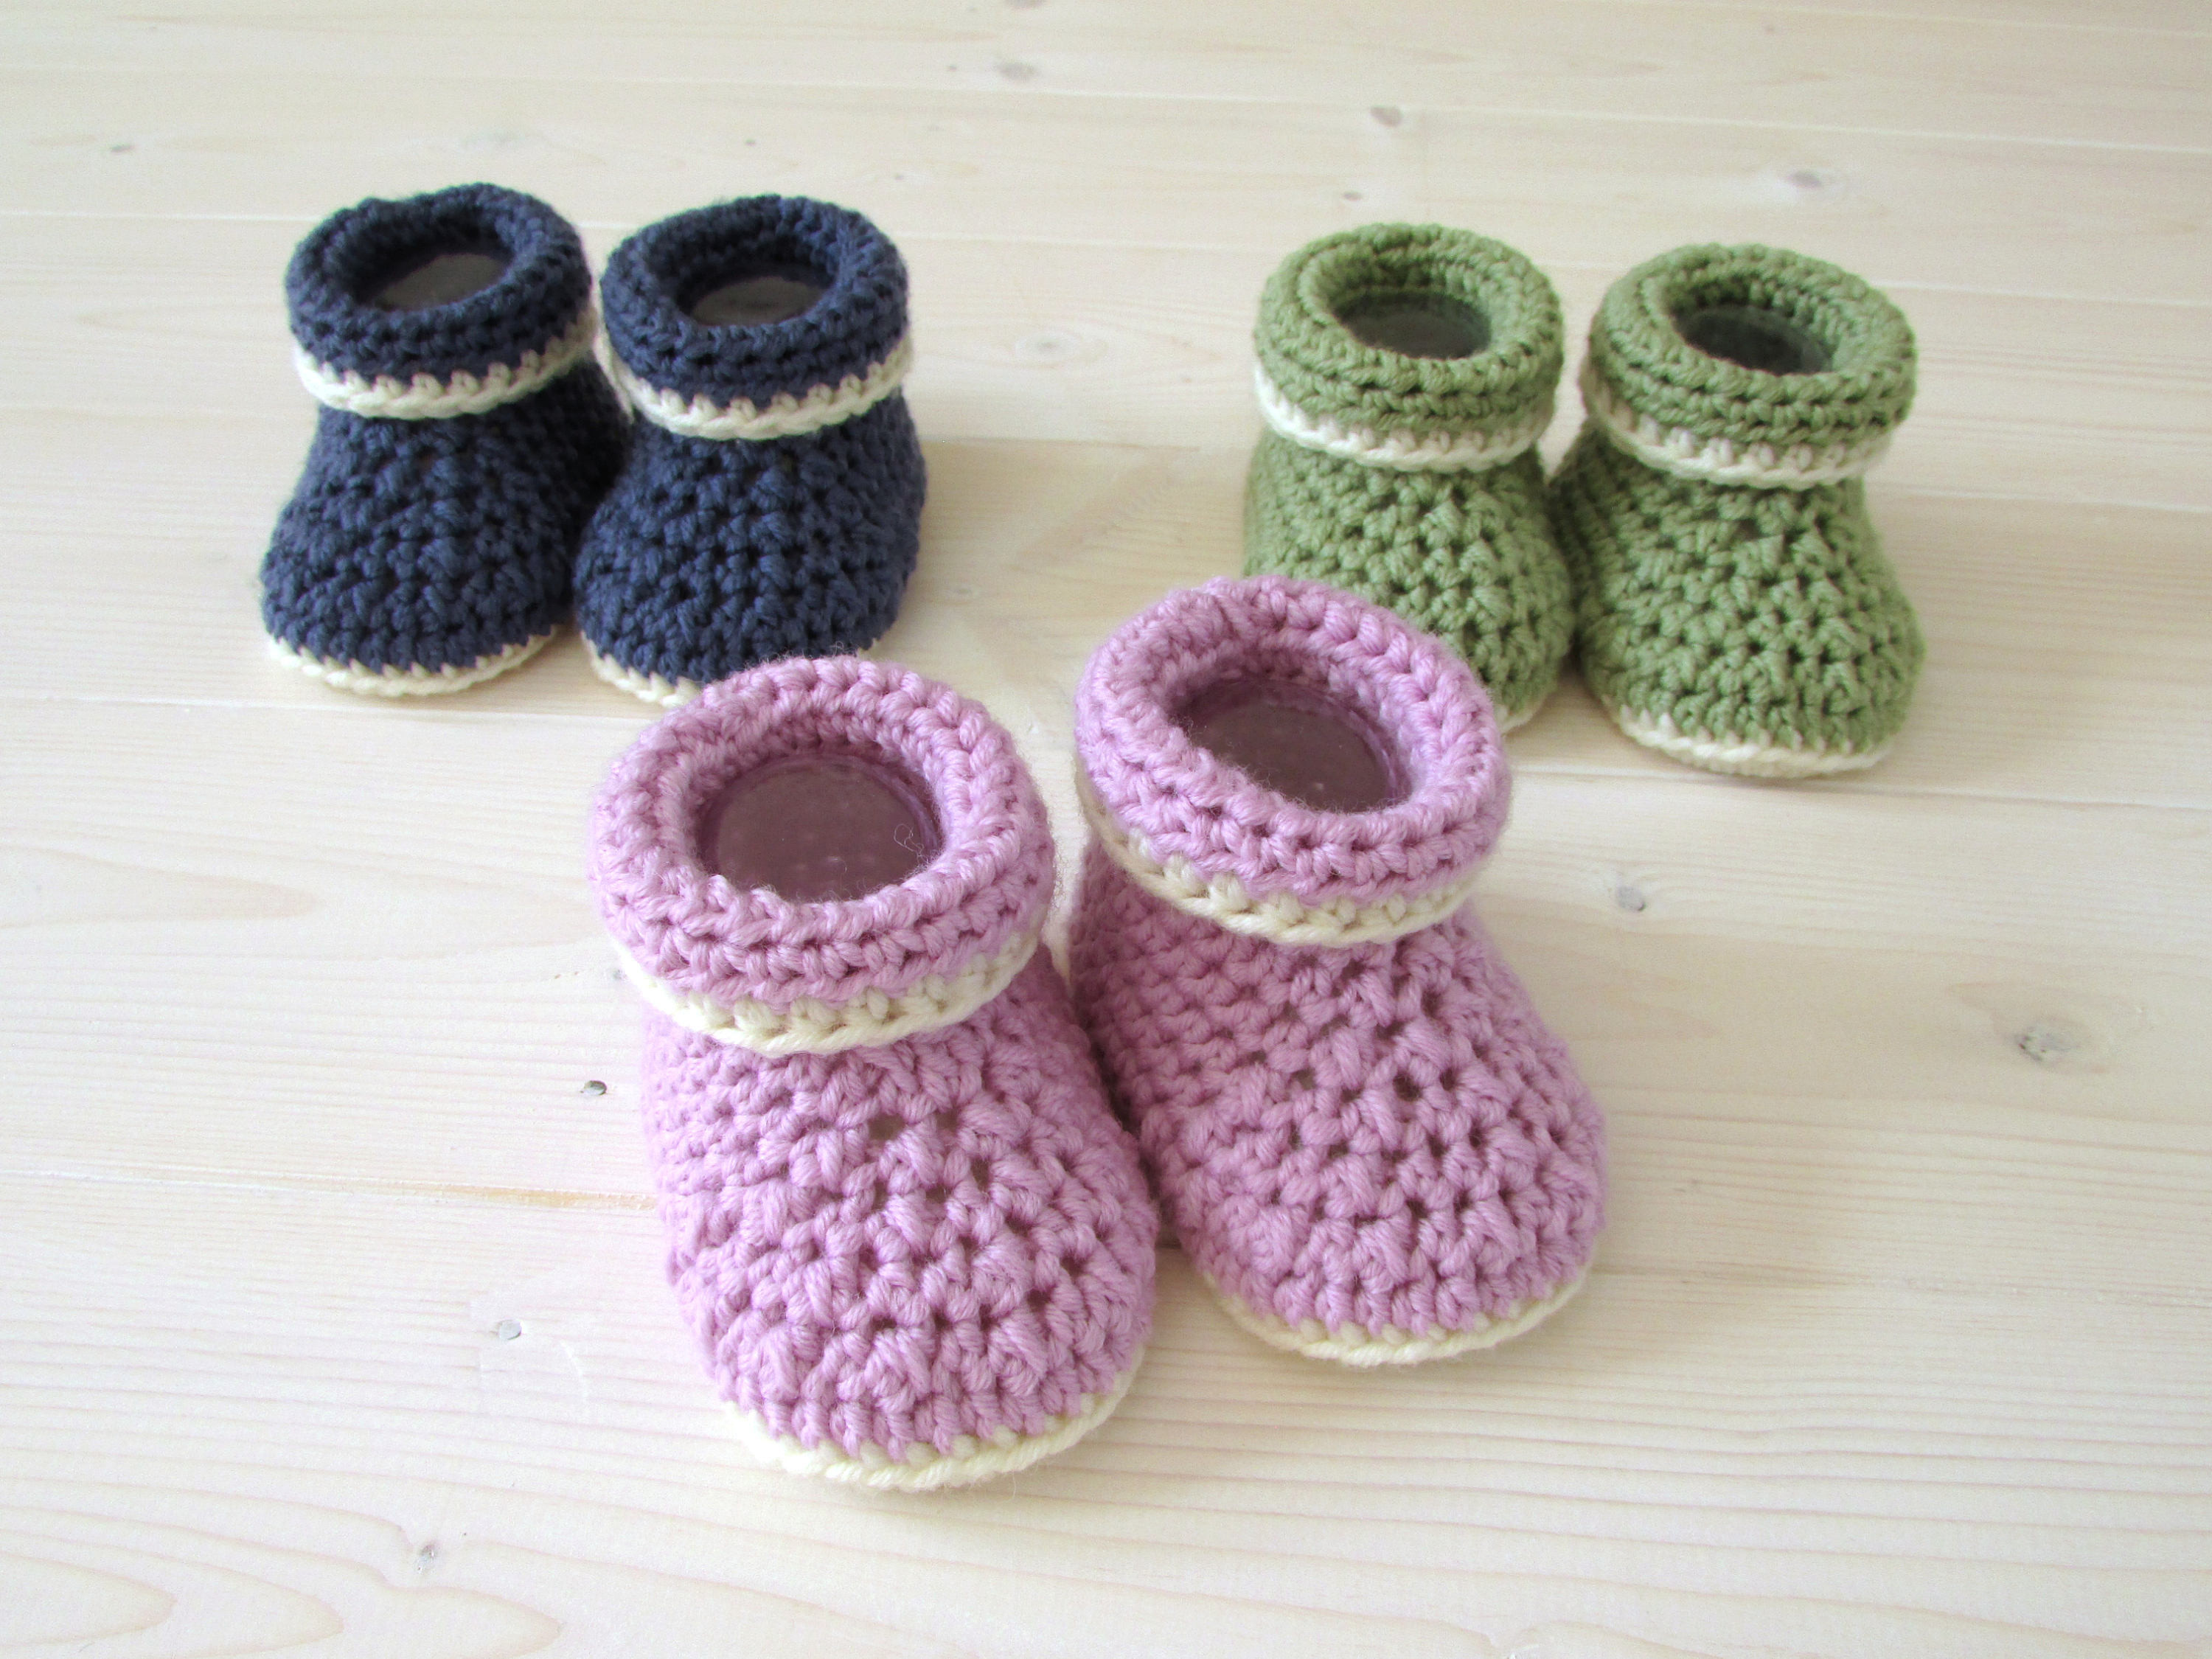 Baby Booties Crochet Pattern for Beginners Elegant Beginners Crochet Cuffed Baby Booties Shoes Written Pattern Of Perfect 47 Ideas Baby Booties Crochet Pattern for Beginners